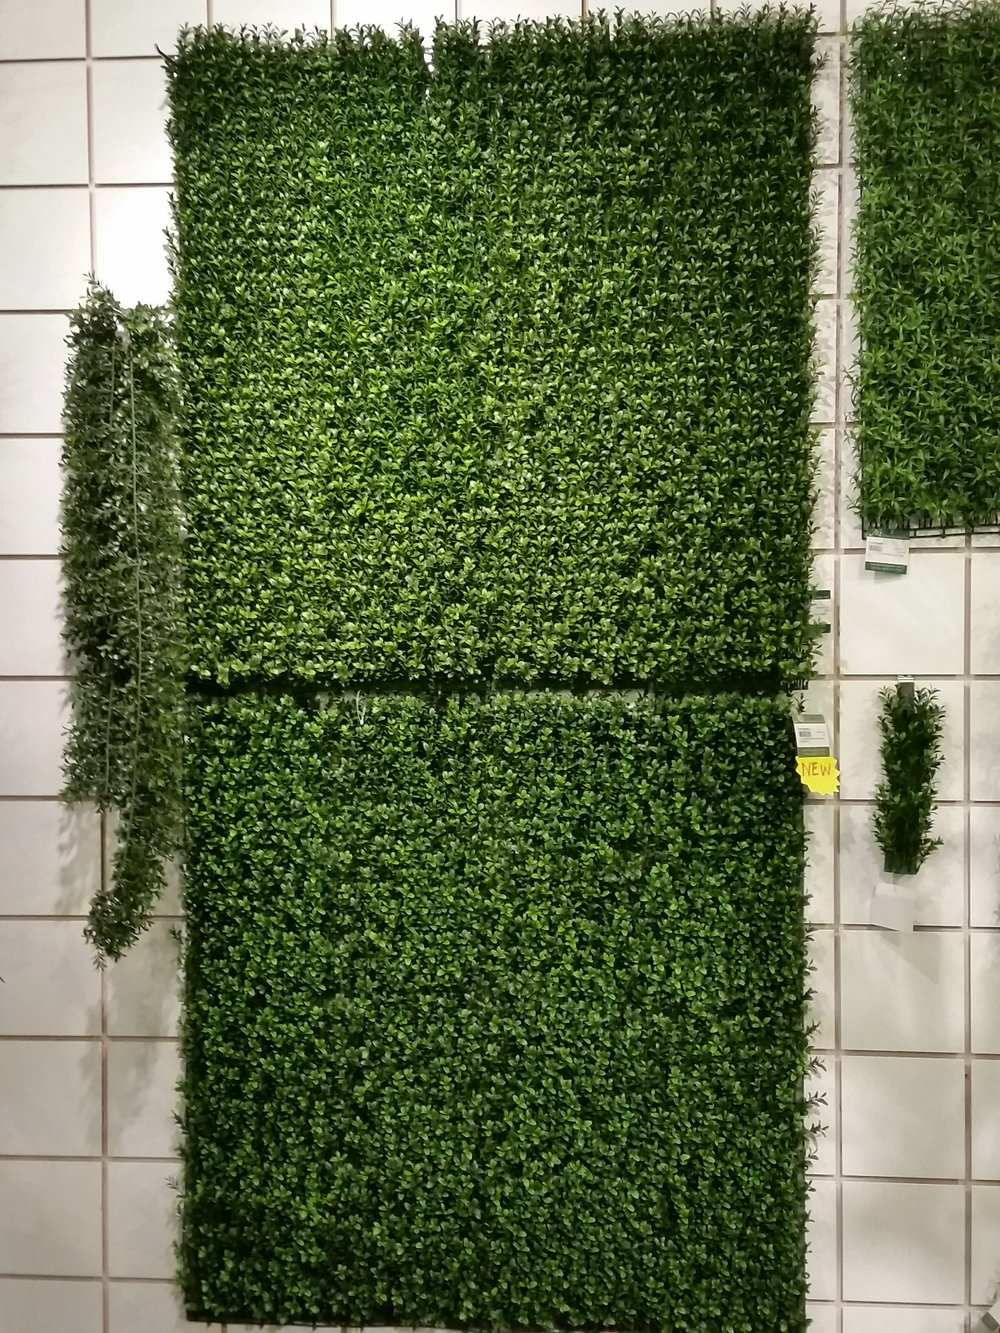 Giant Boxwood mat